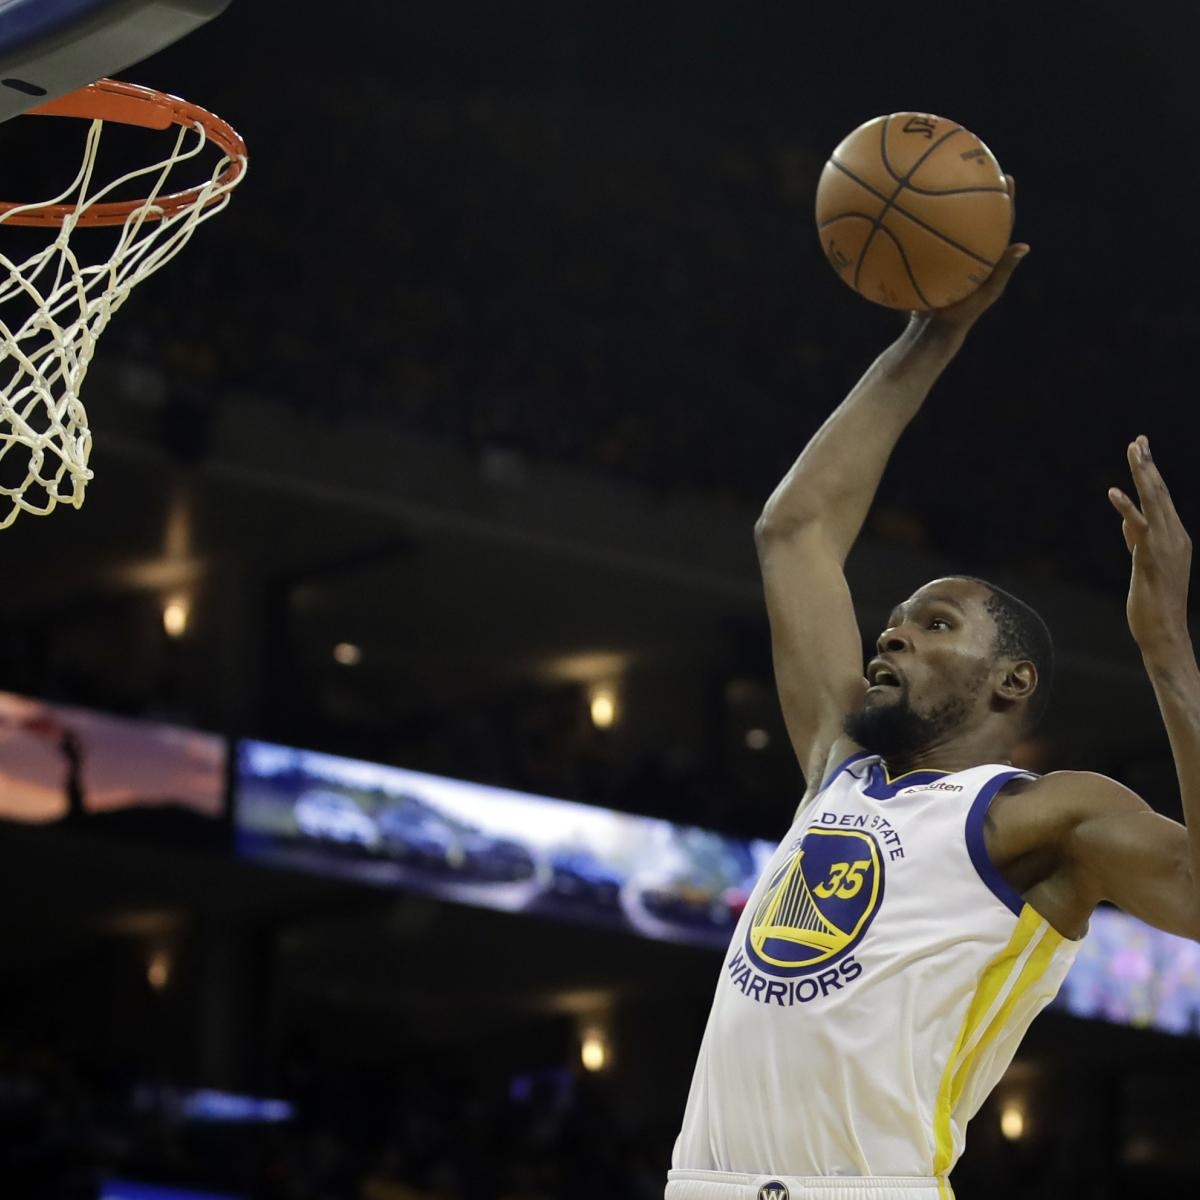 468834580d47 Warriors News  Kevin Durant Apologizes for Ejection During Game 1 vs.  Clippers